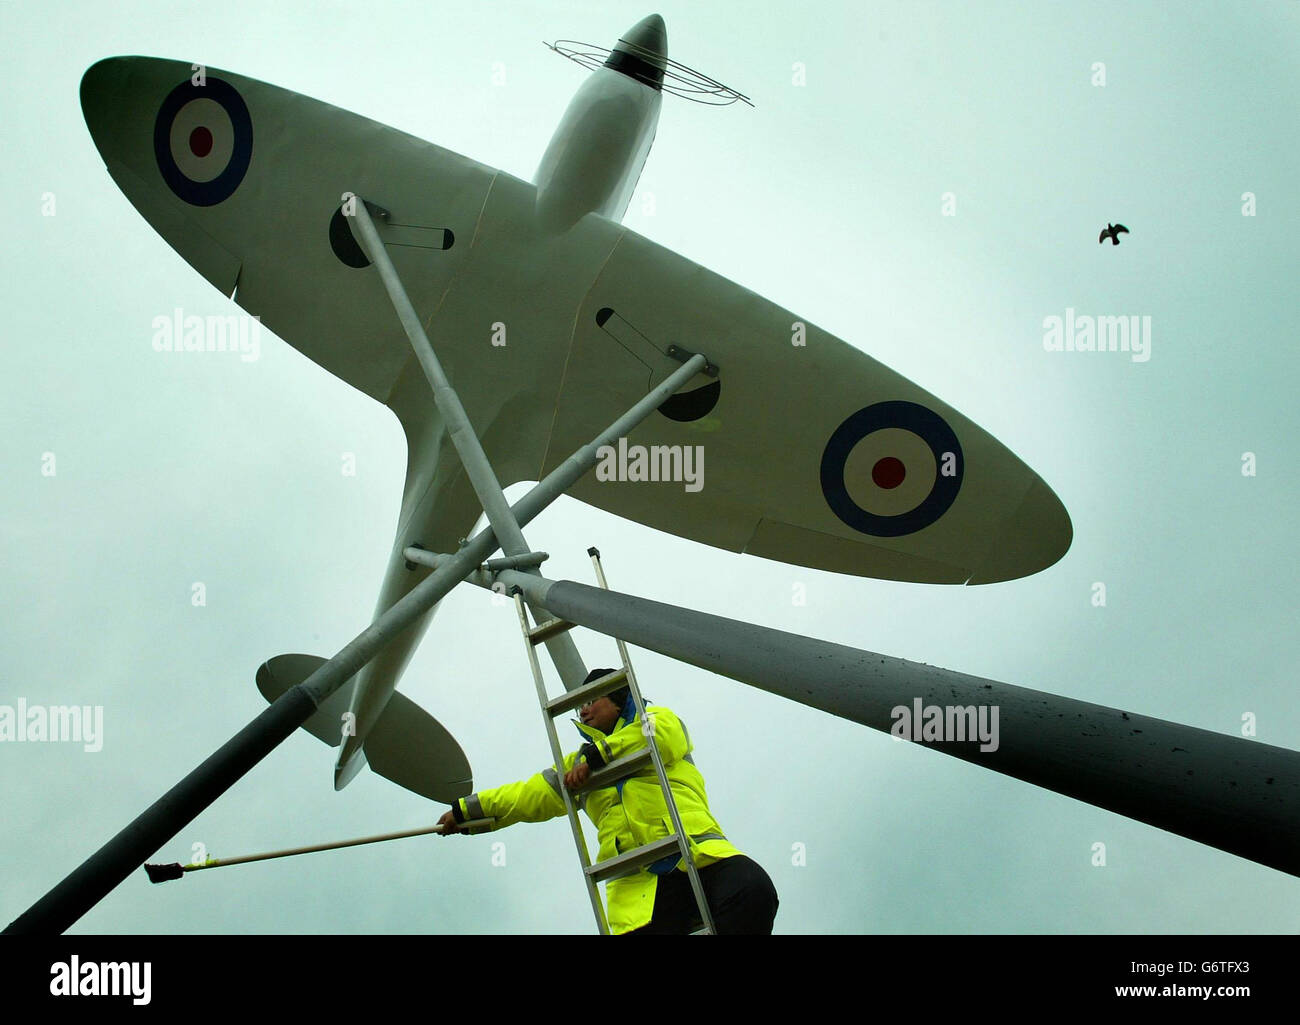 RJ Mitchell's famous Spitfire fighter plane - Stock Image